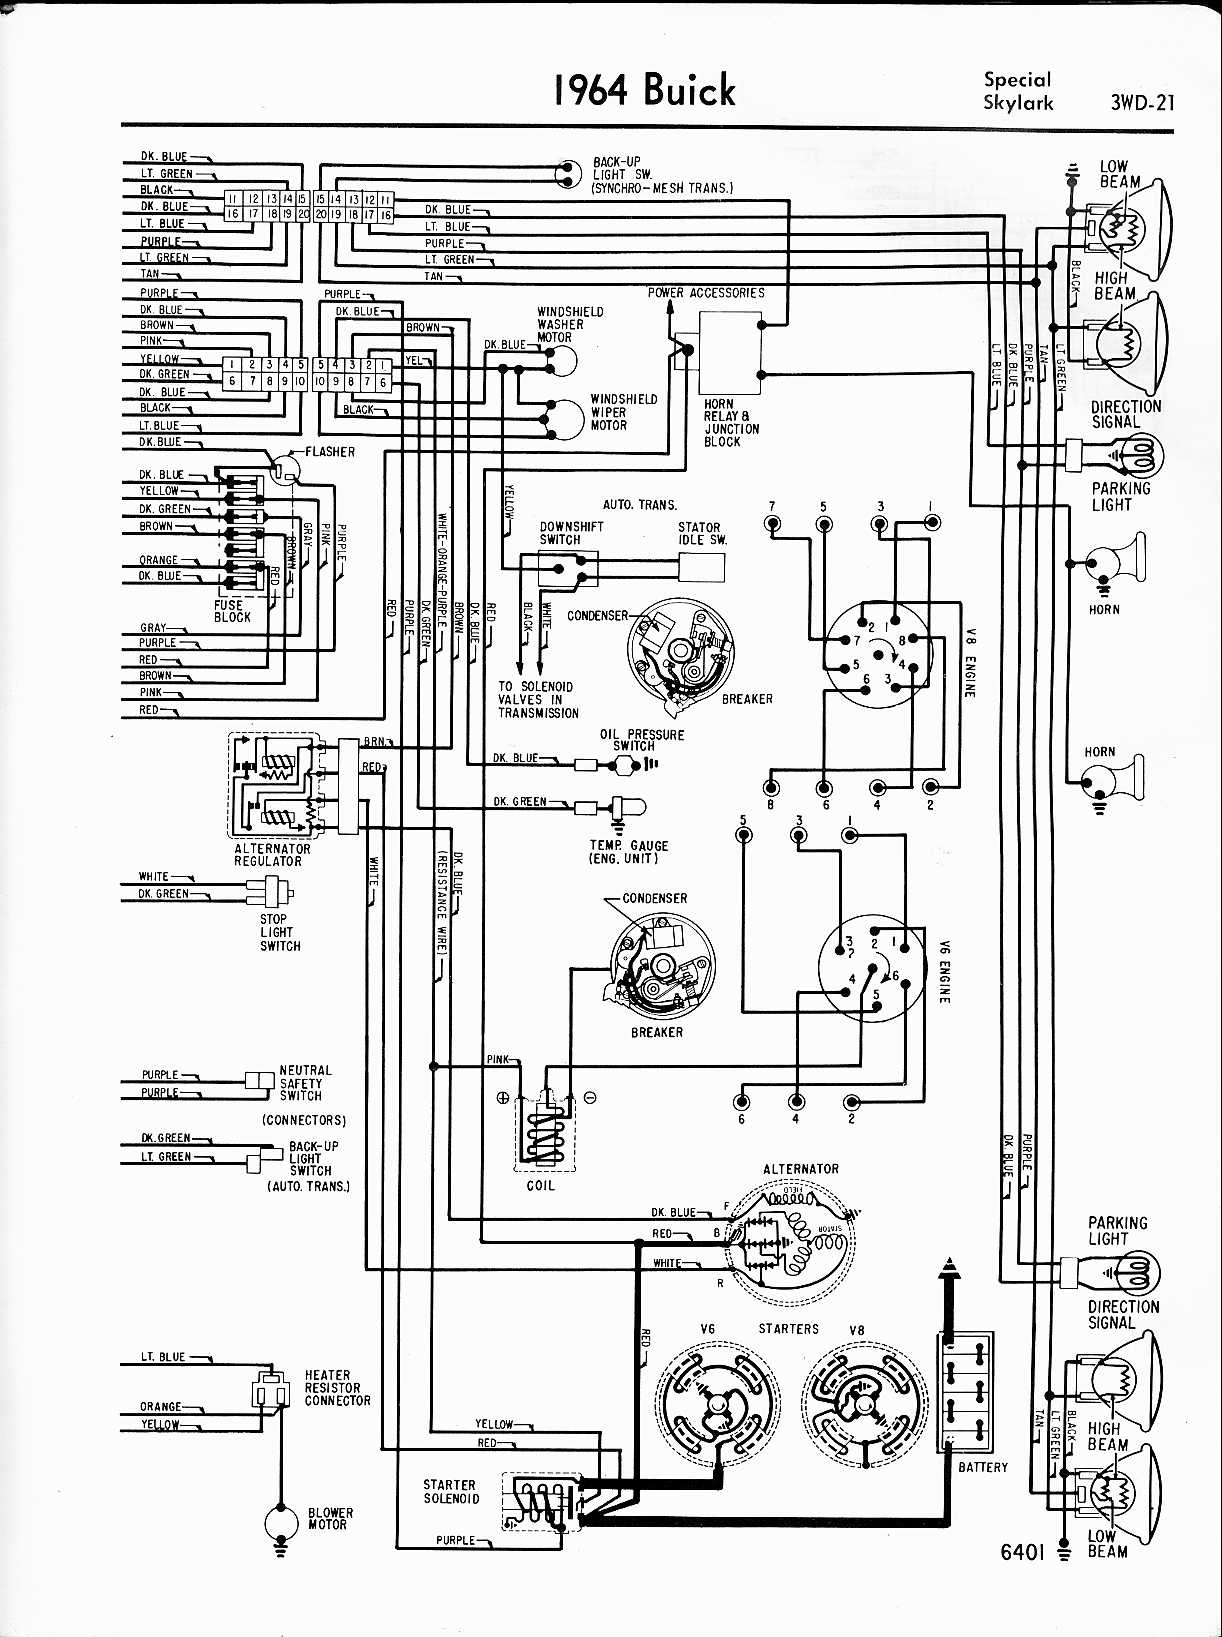 1971 buick riviera fuse box  1971  free engine image for user manual download